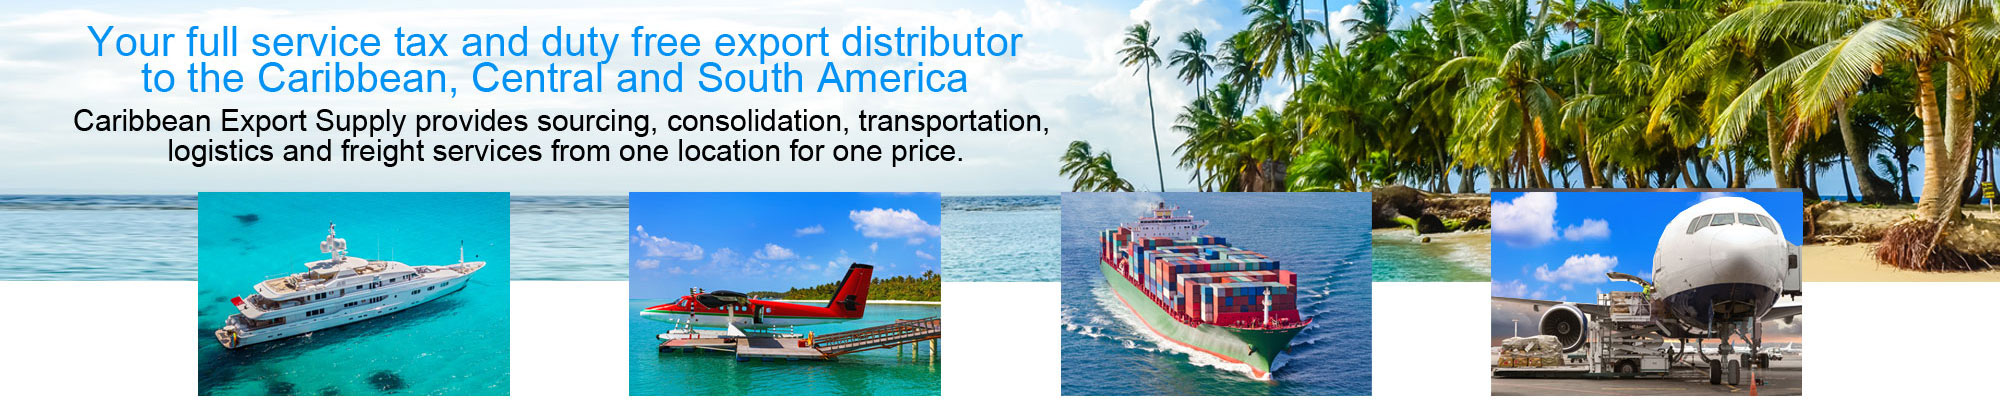 Tax and Duty Free Export Supplier